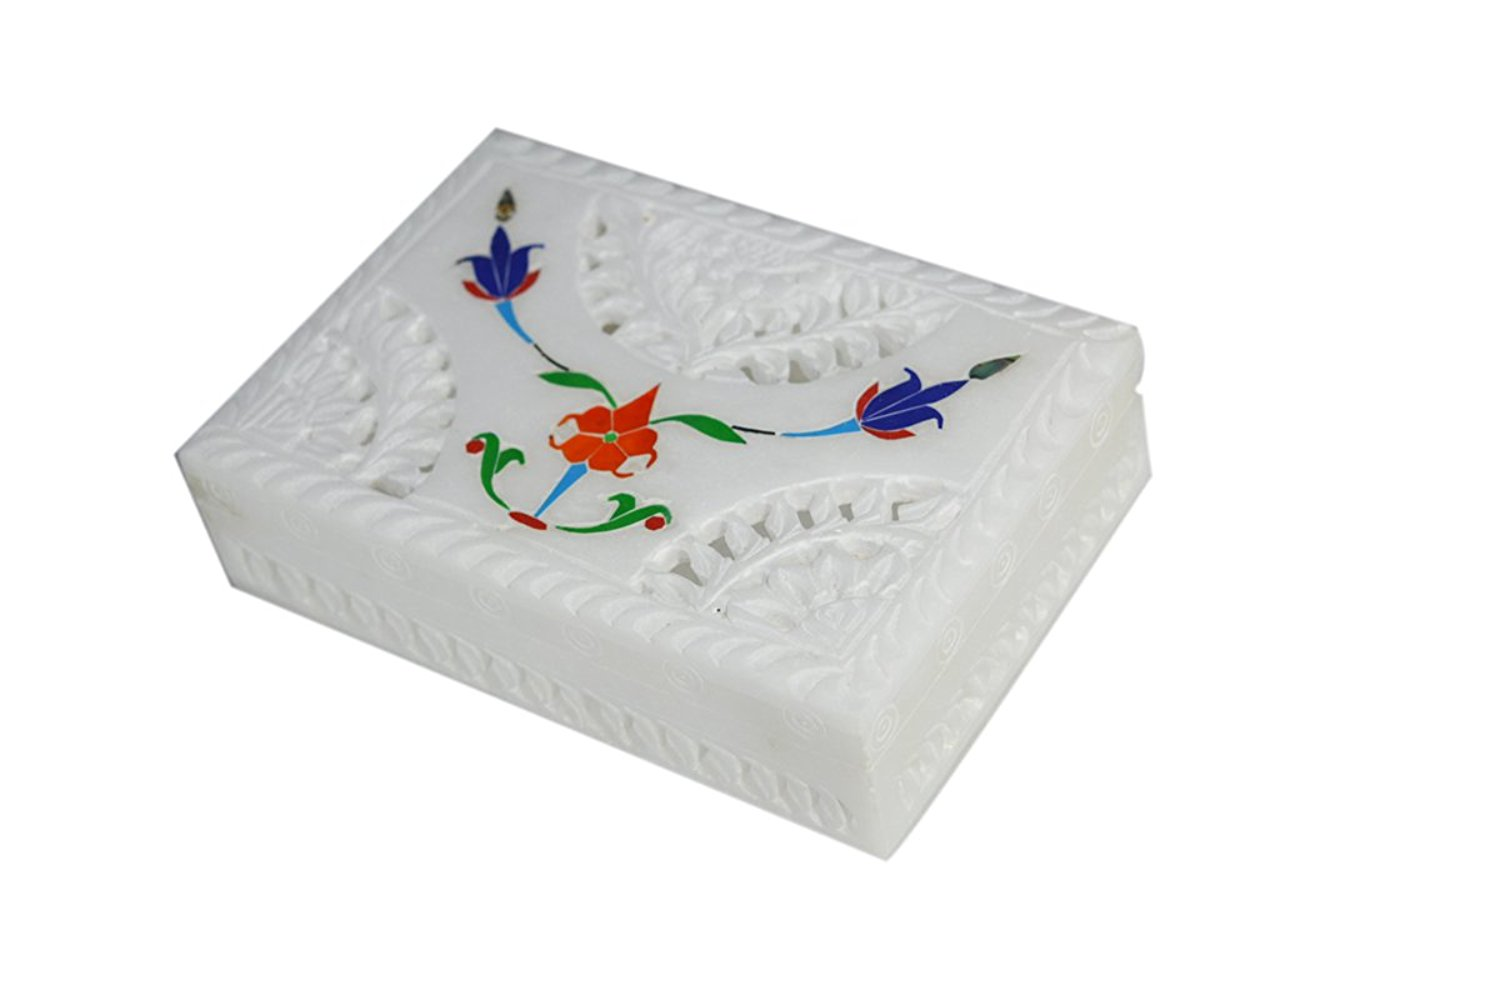 Sehar Crafts White Marble Stone Fixed Jewelry Box For